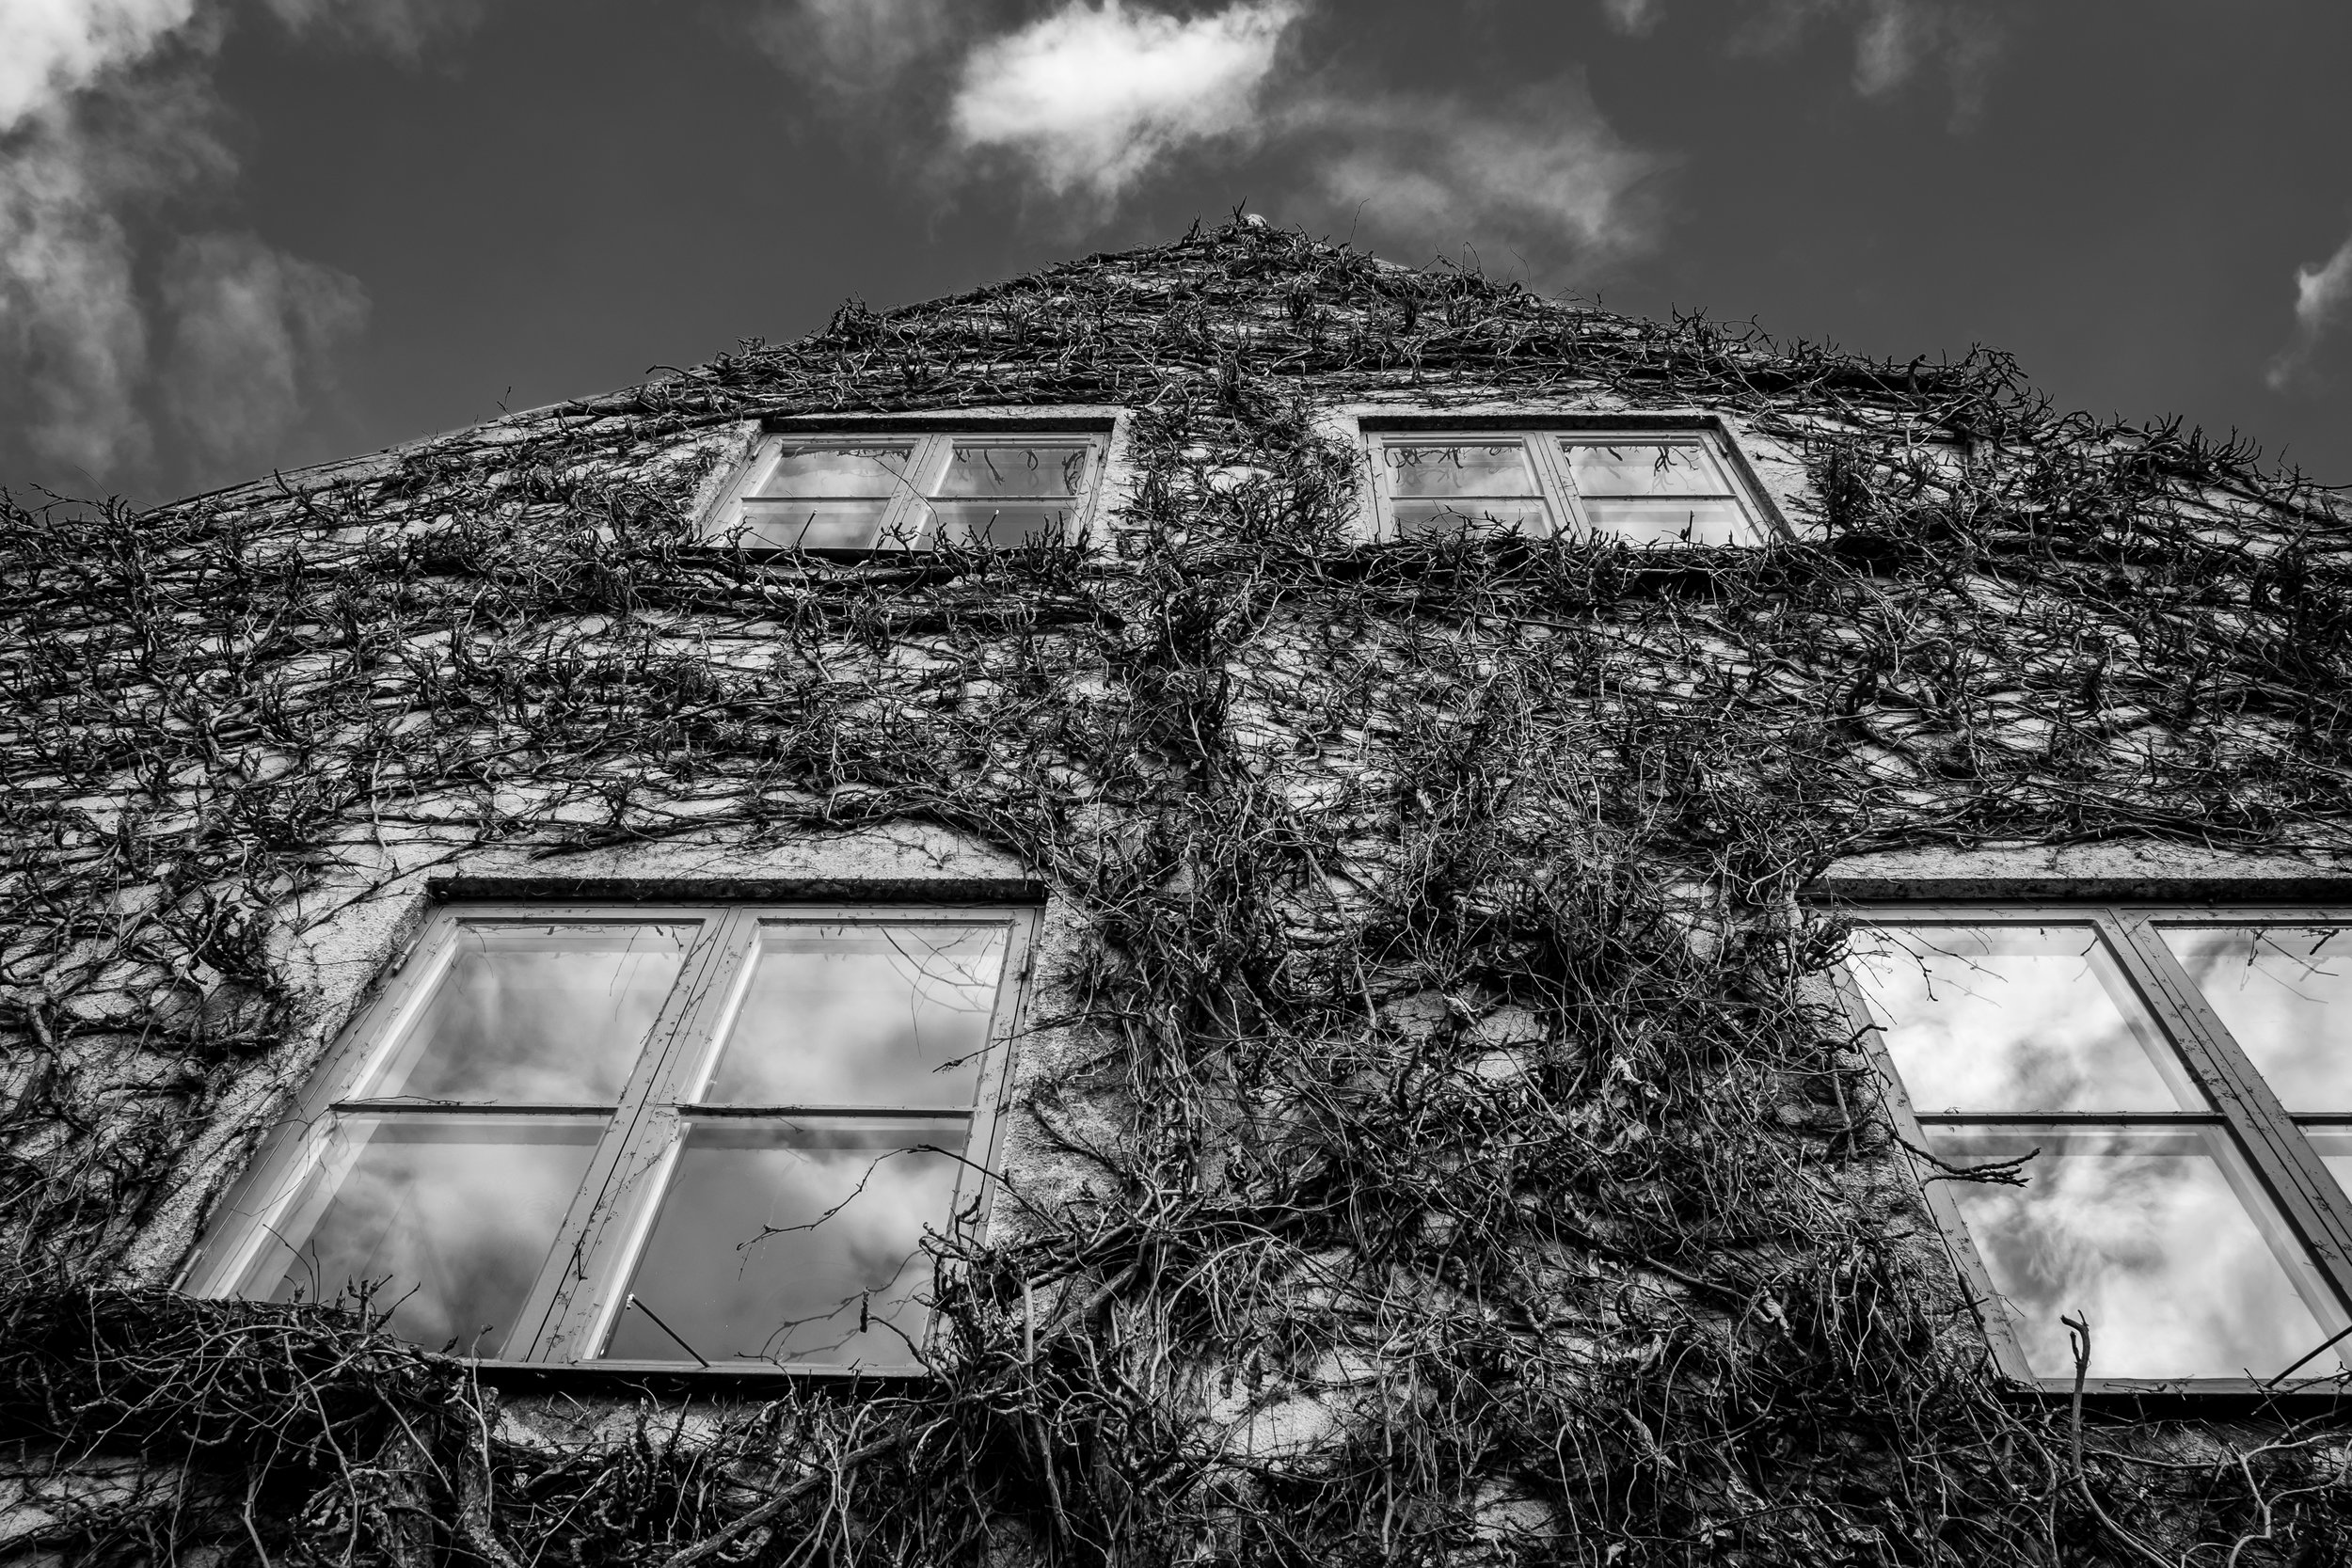 A house covered by ivy